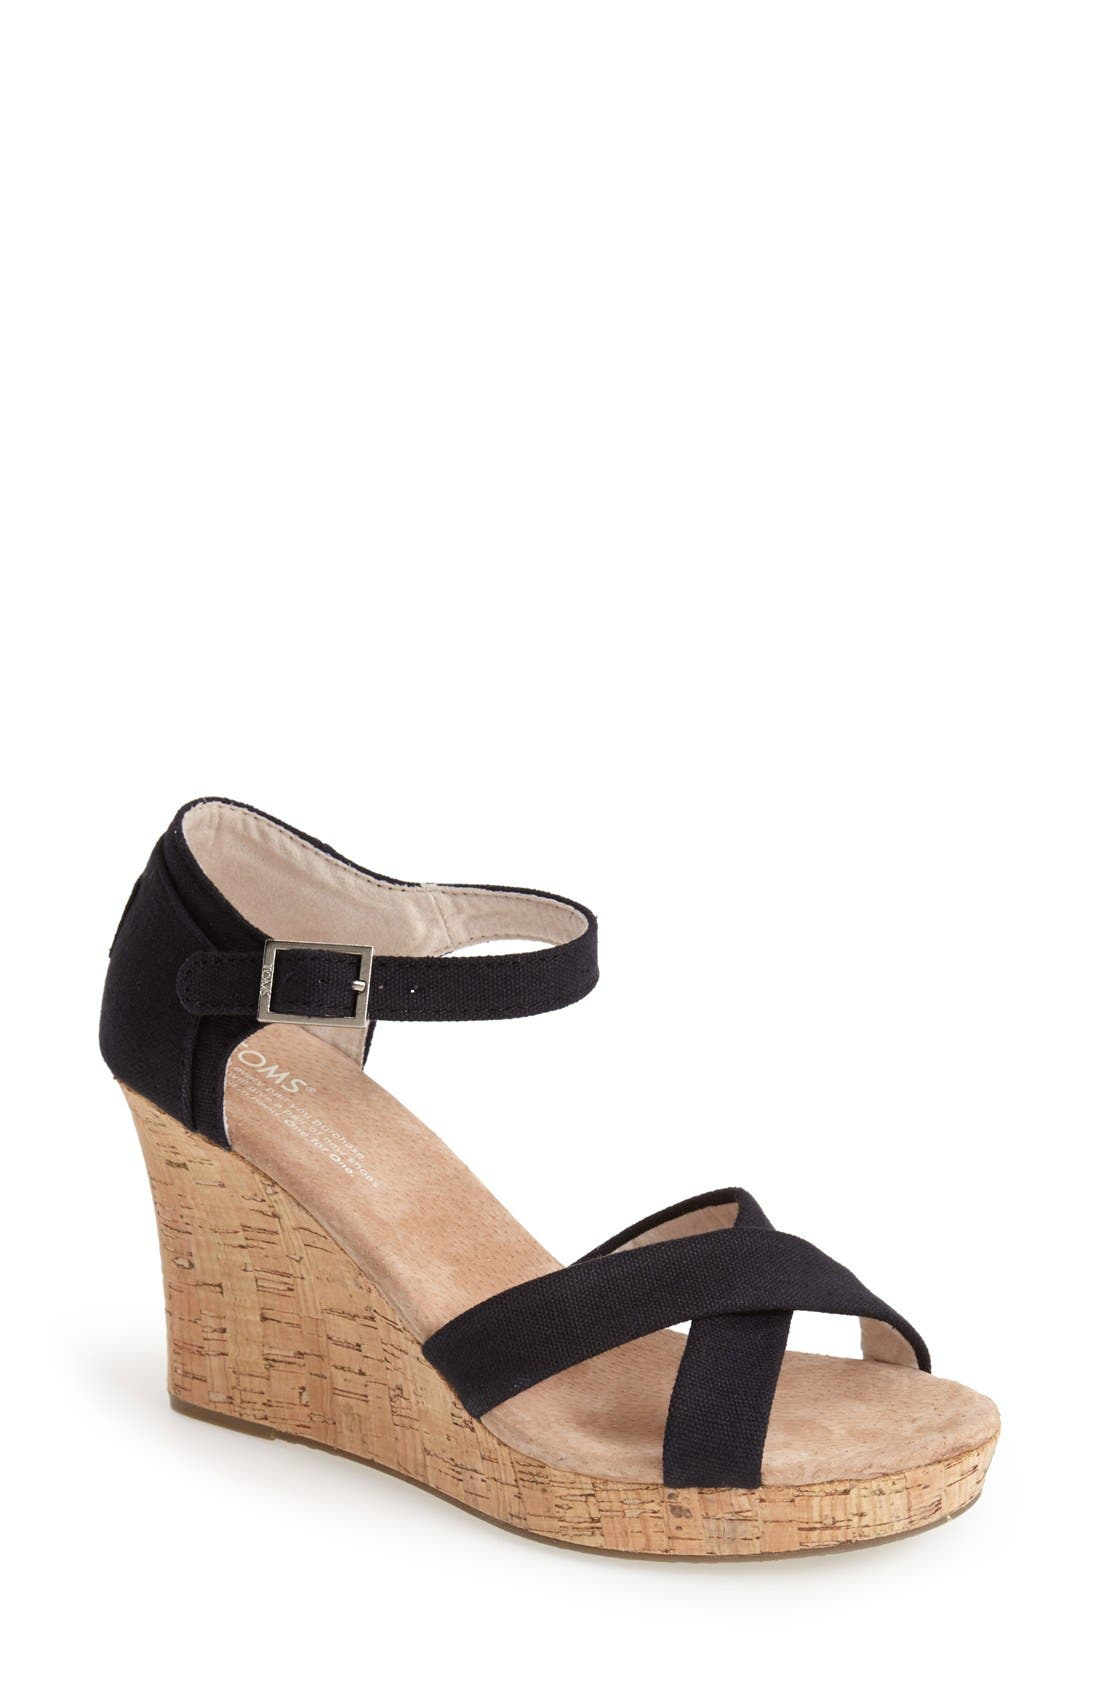 Alternate Image 1 Selected - TOMS Canvas Ankle Strap Wedge Sandal (Women)